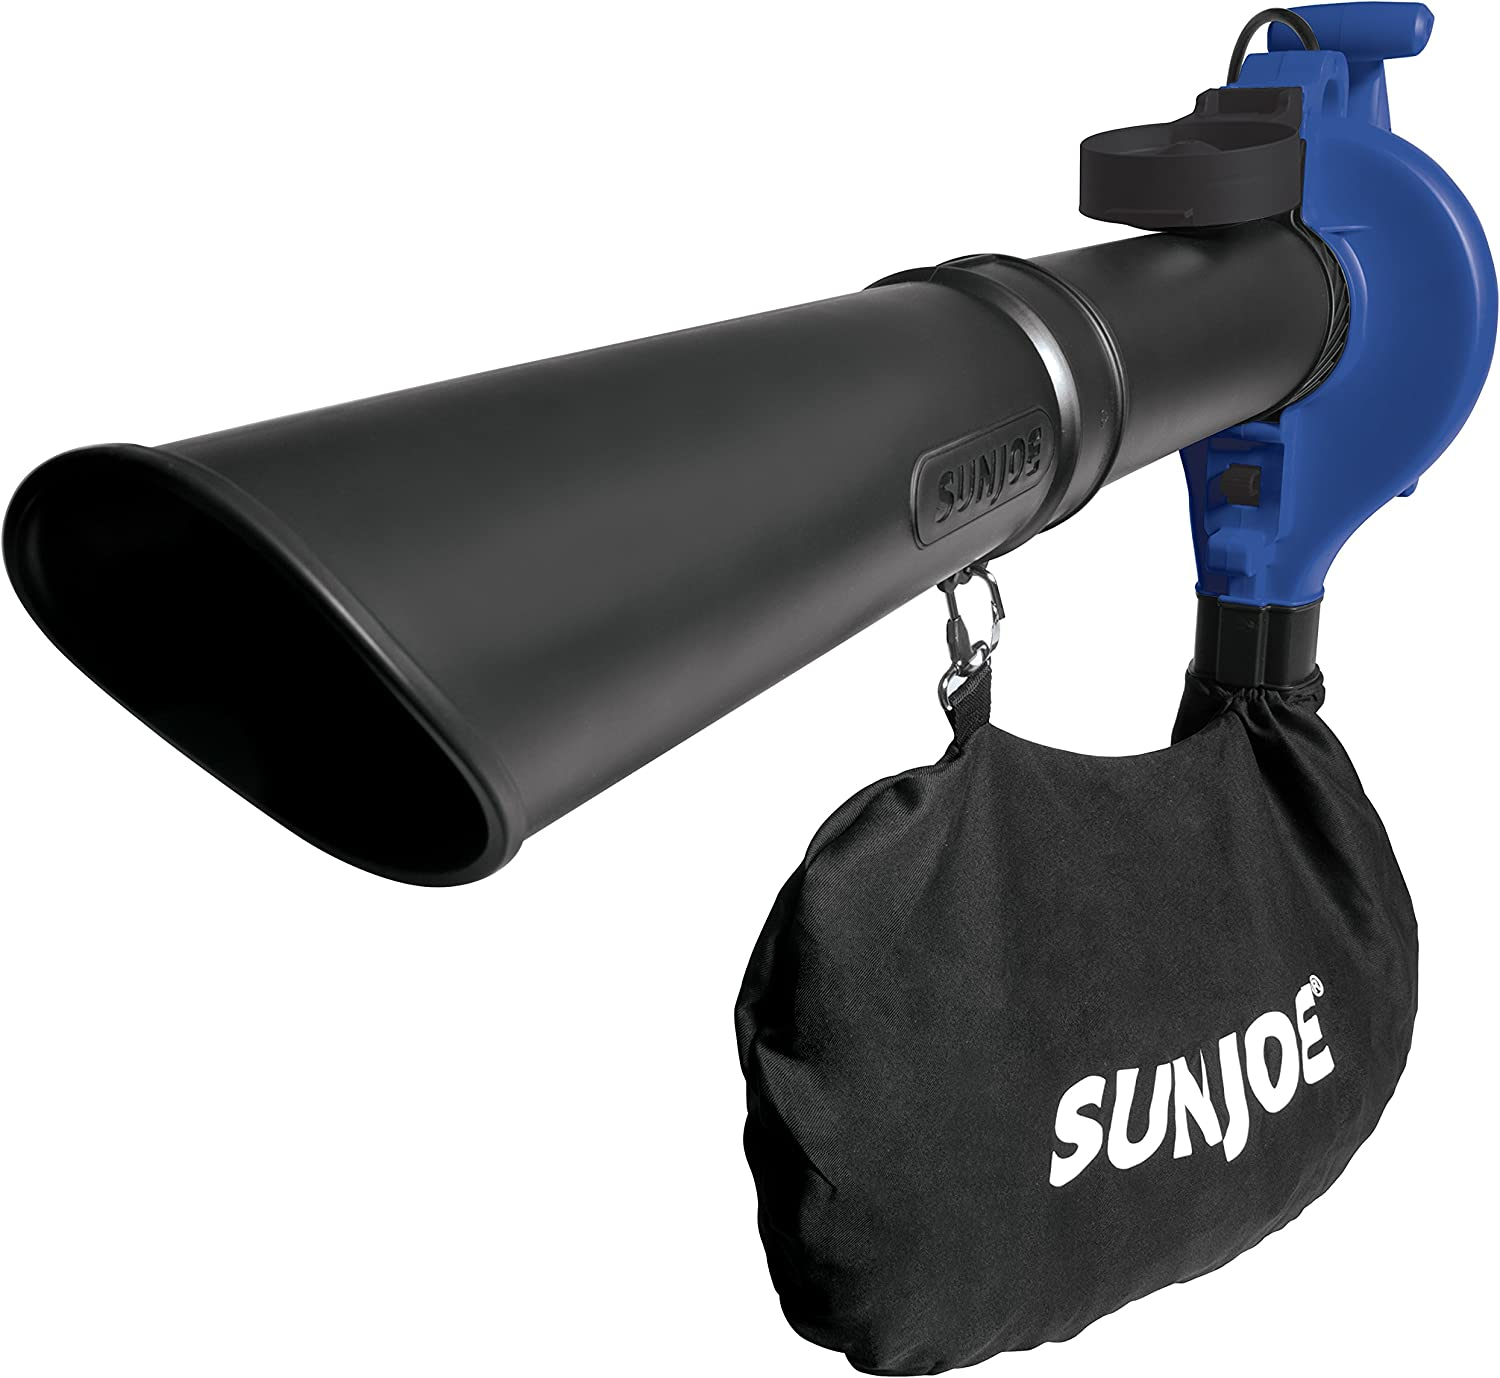 Sun Joe SBJ603E-SJB 13-Amp 240 MPH 3-in-1 Electric Blower/Mulcher/Vacuum, Dark Blue